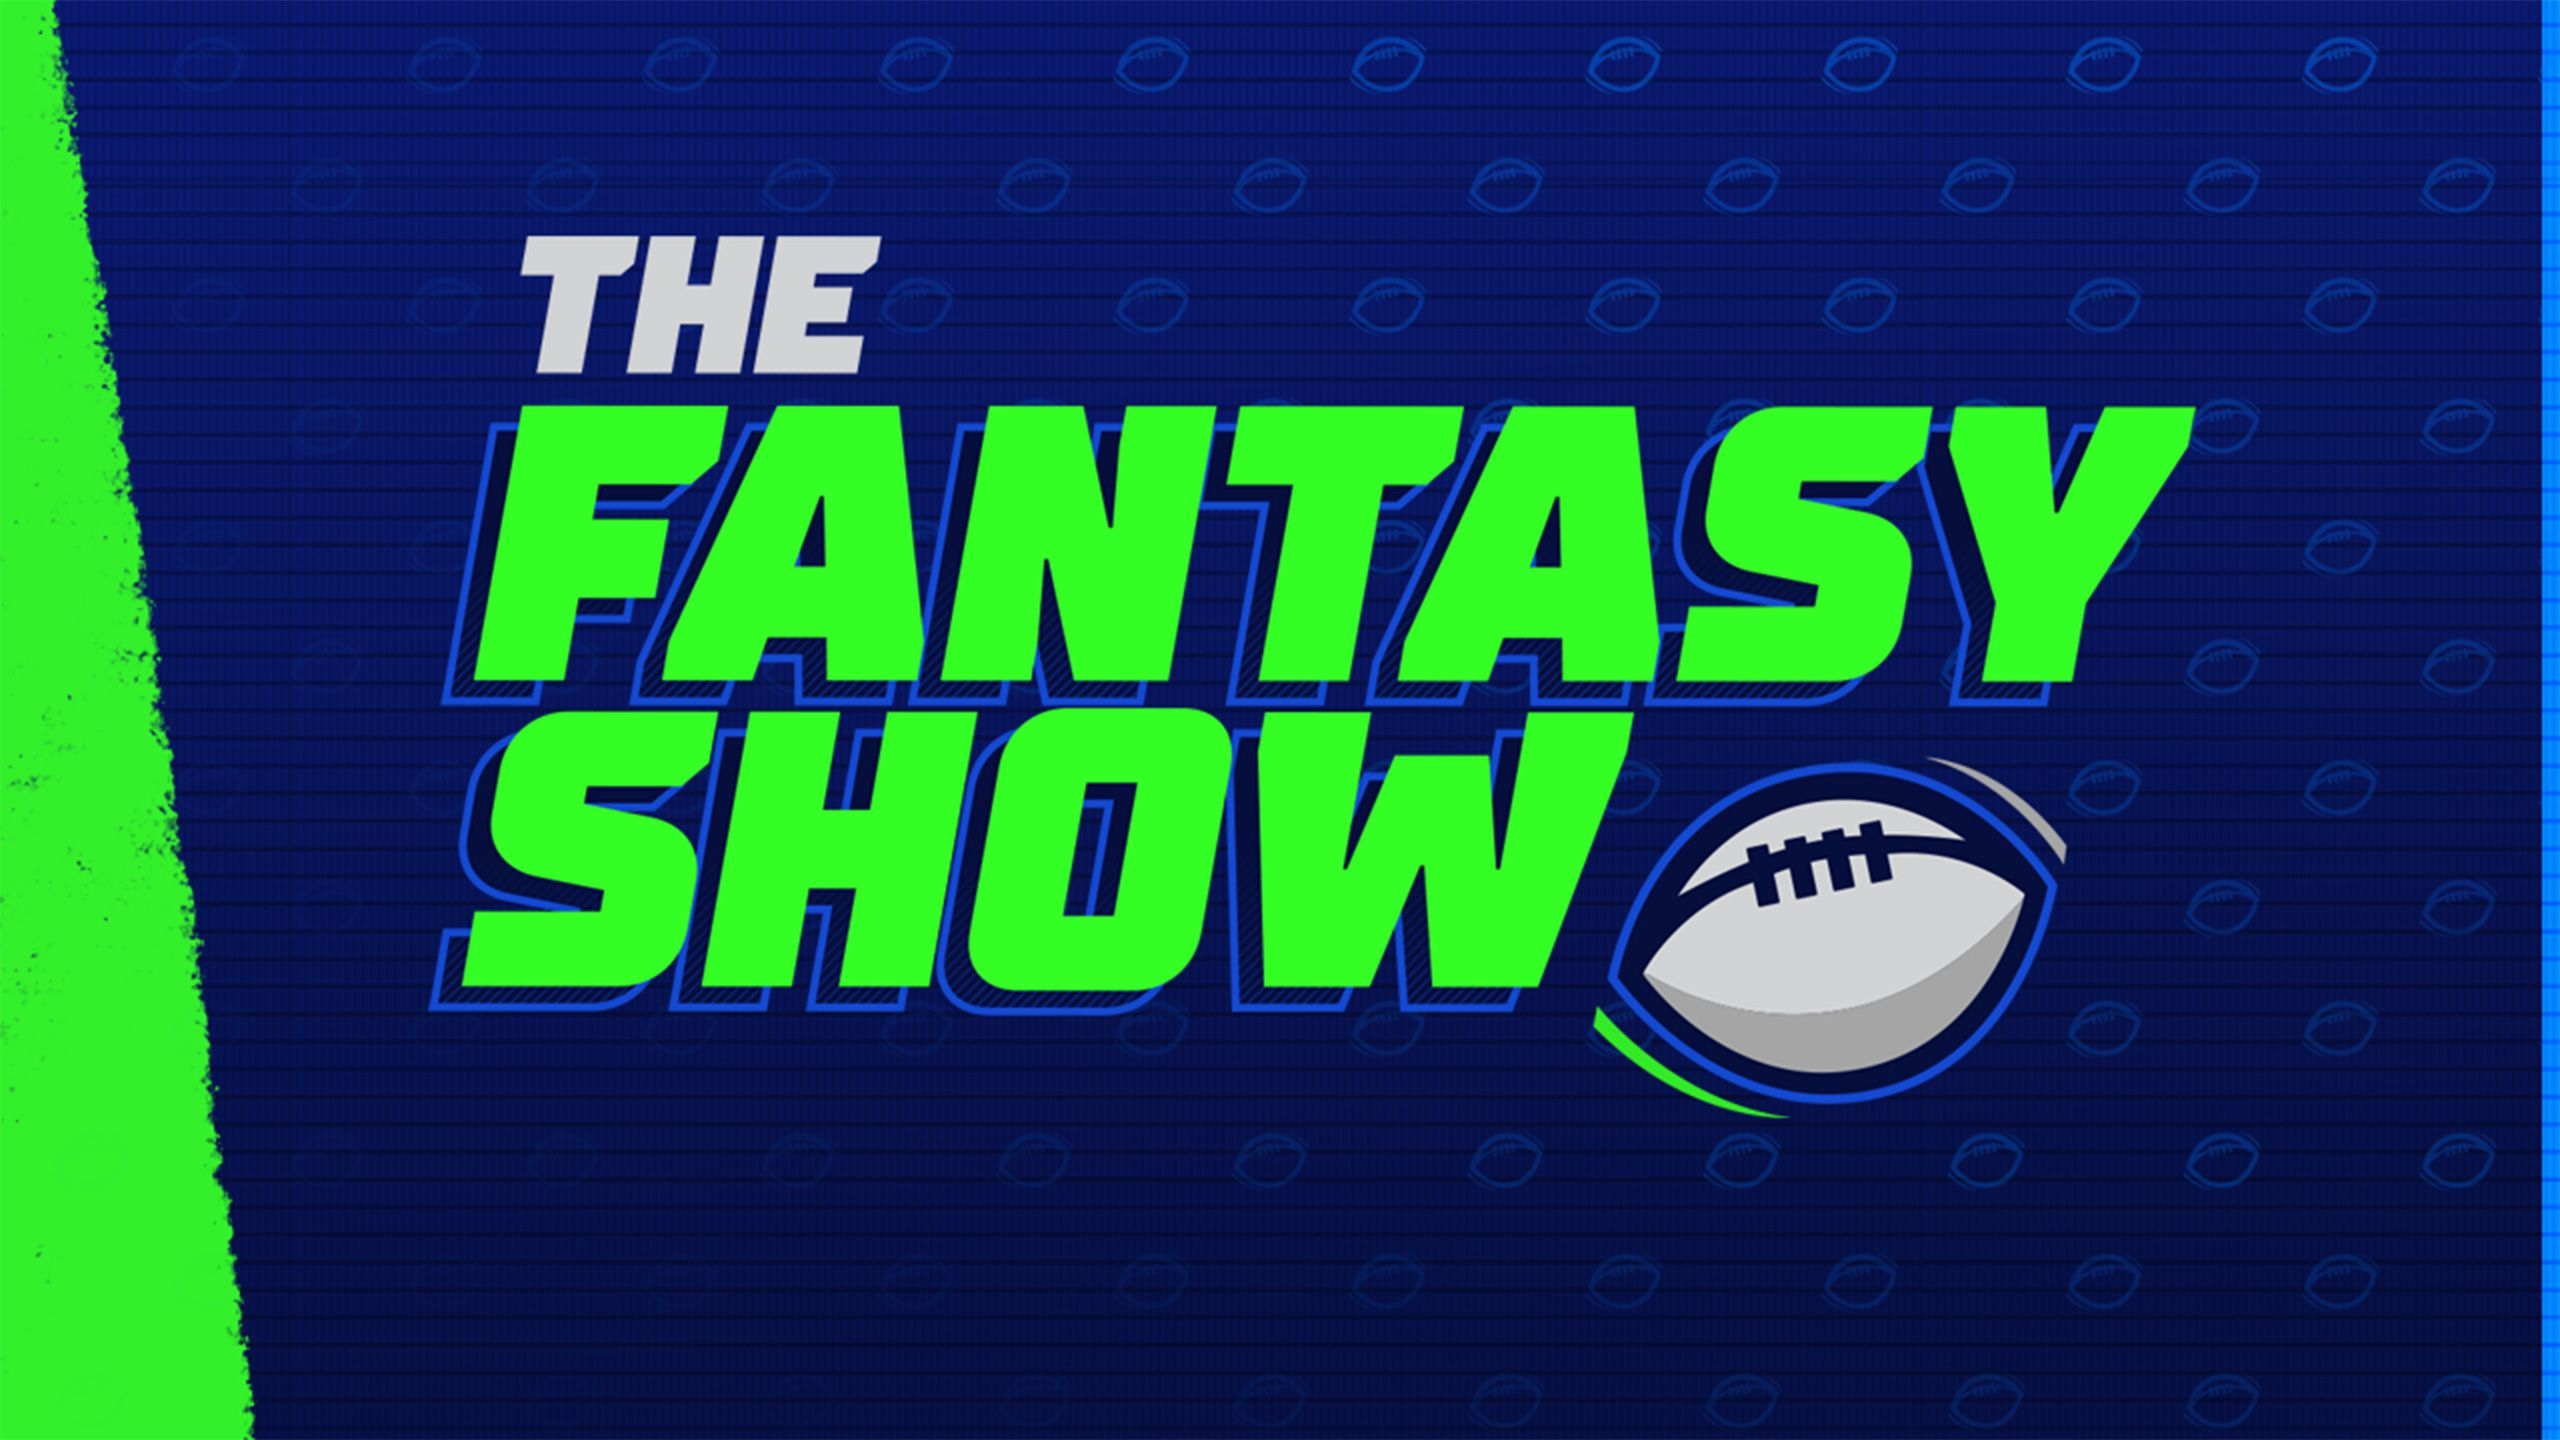 Thu, 12/14 - The Fantasy Show presented by E*Trade